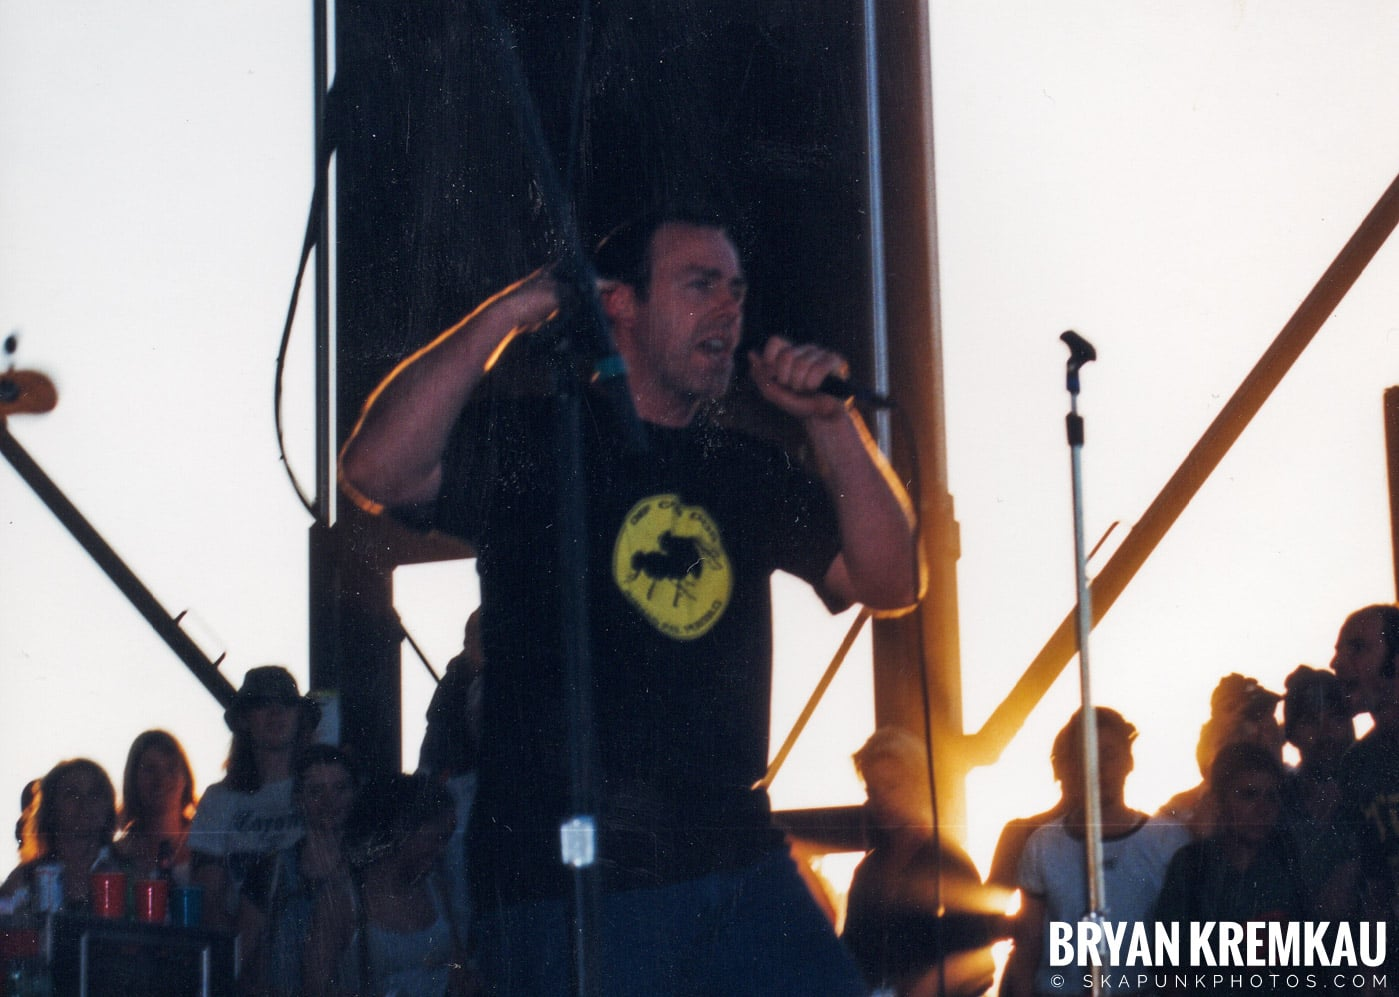 Bad Religion @ Vans Warped Tour, Randall's Island, NYC - 8.1.98 (5)